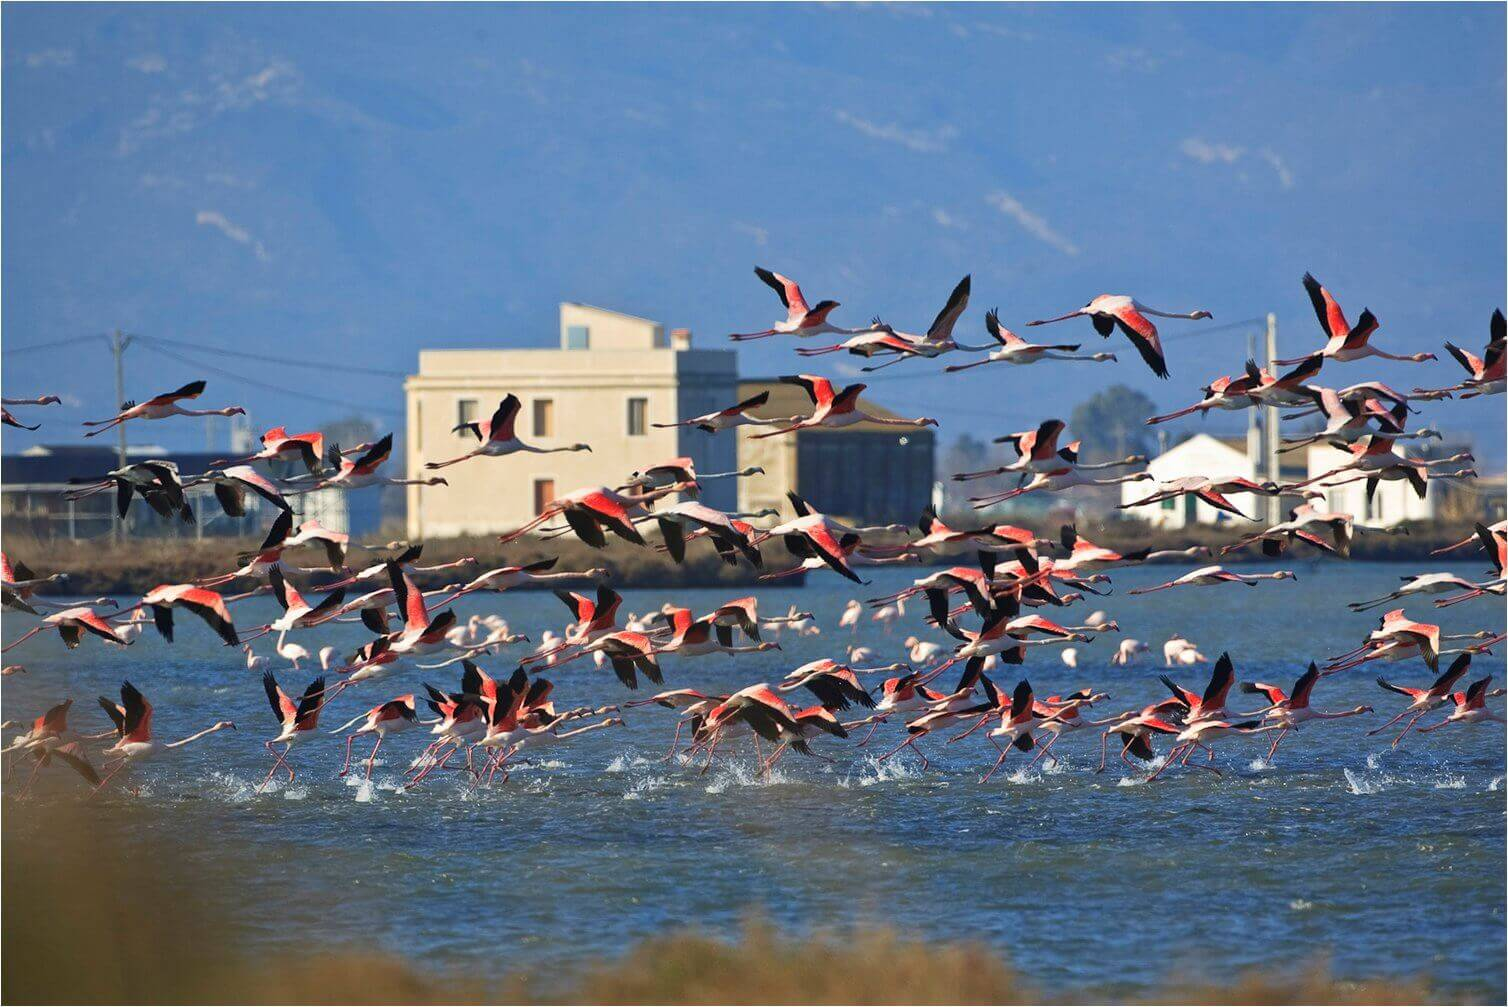 view building with flamingos flying